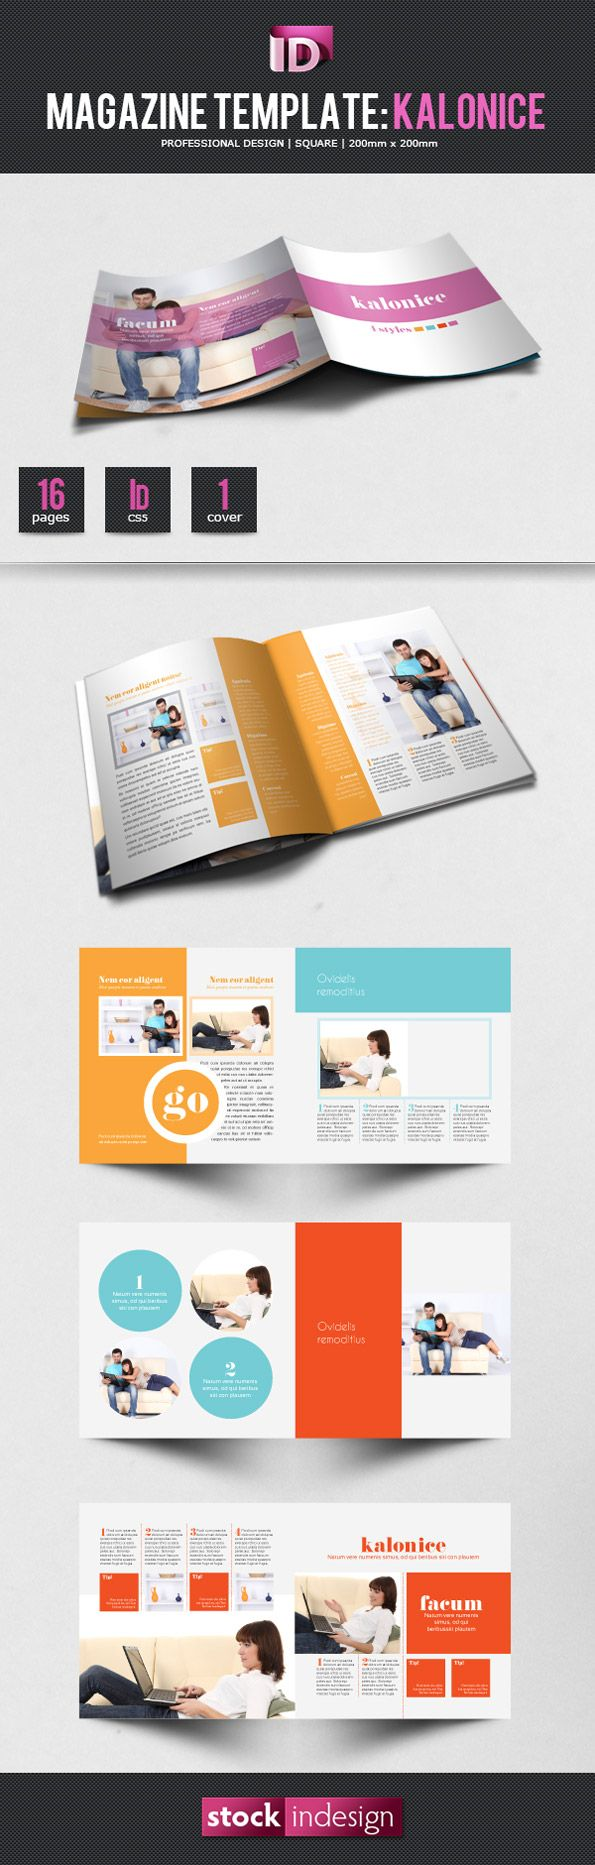 Free indesign magazine template kalonice layout for Adobe indesign magazine templates free download